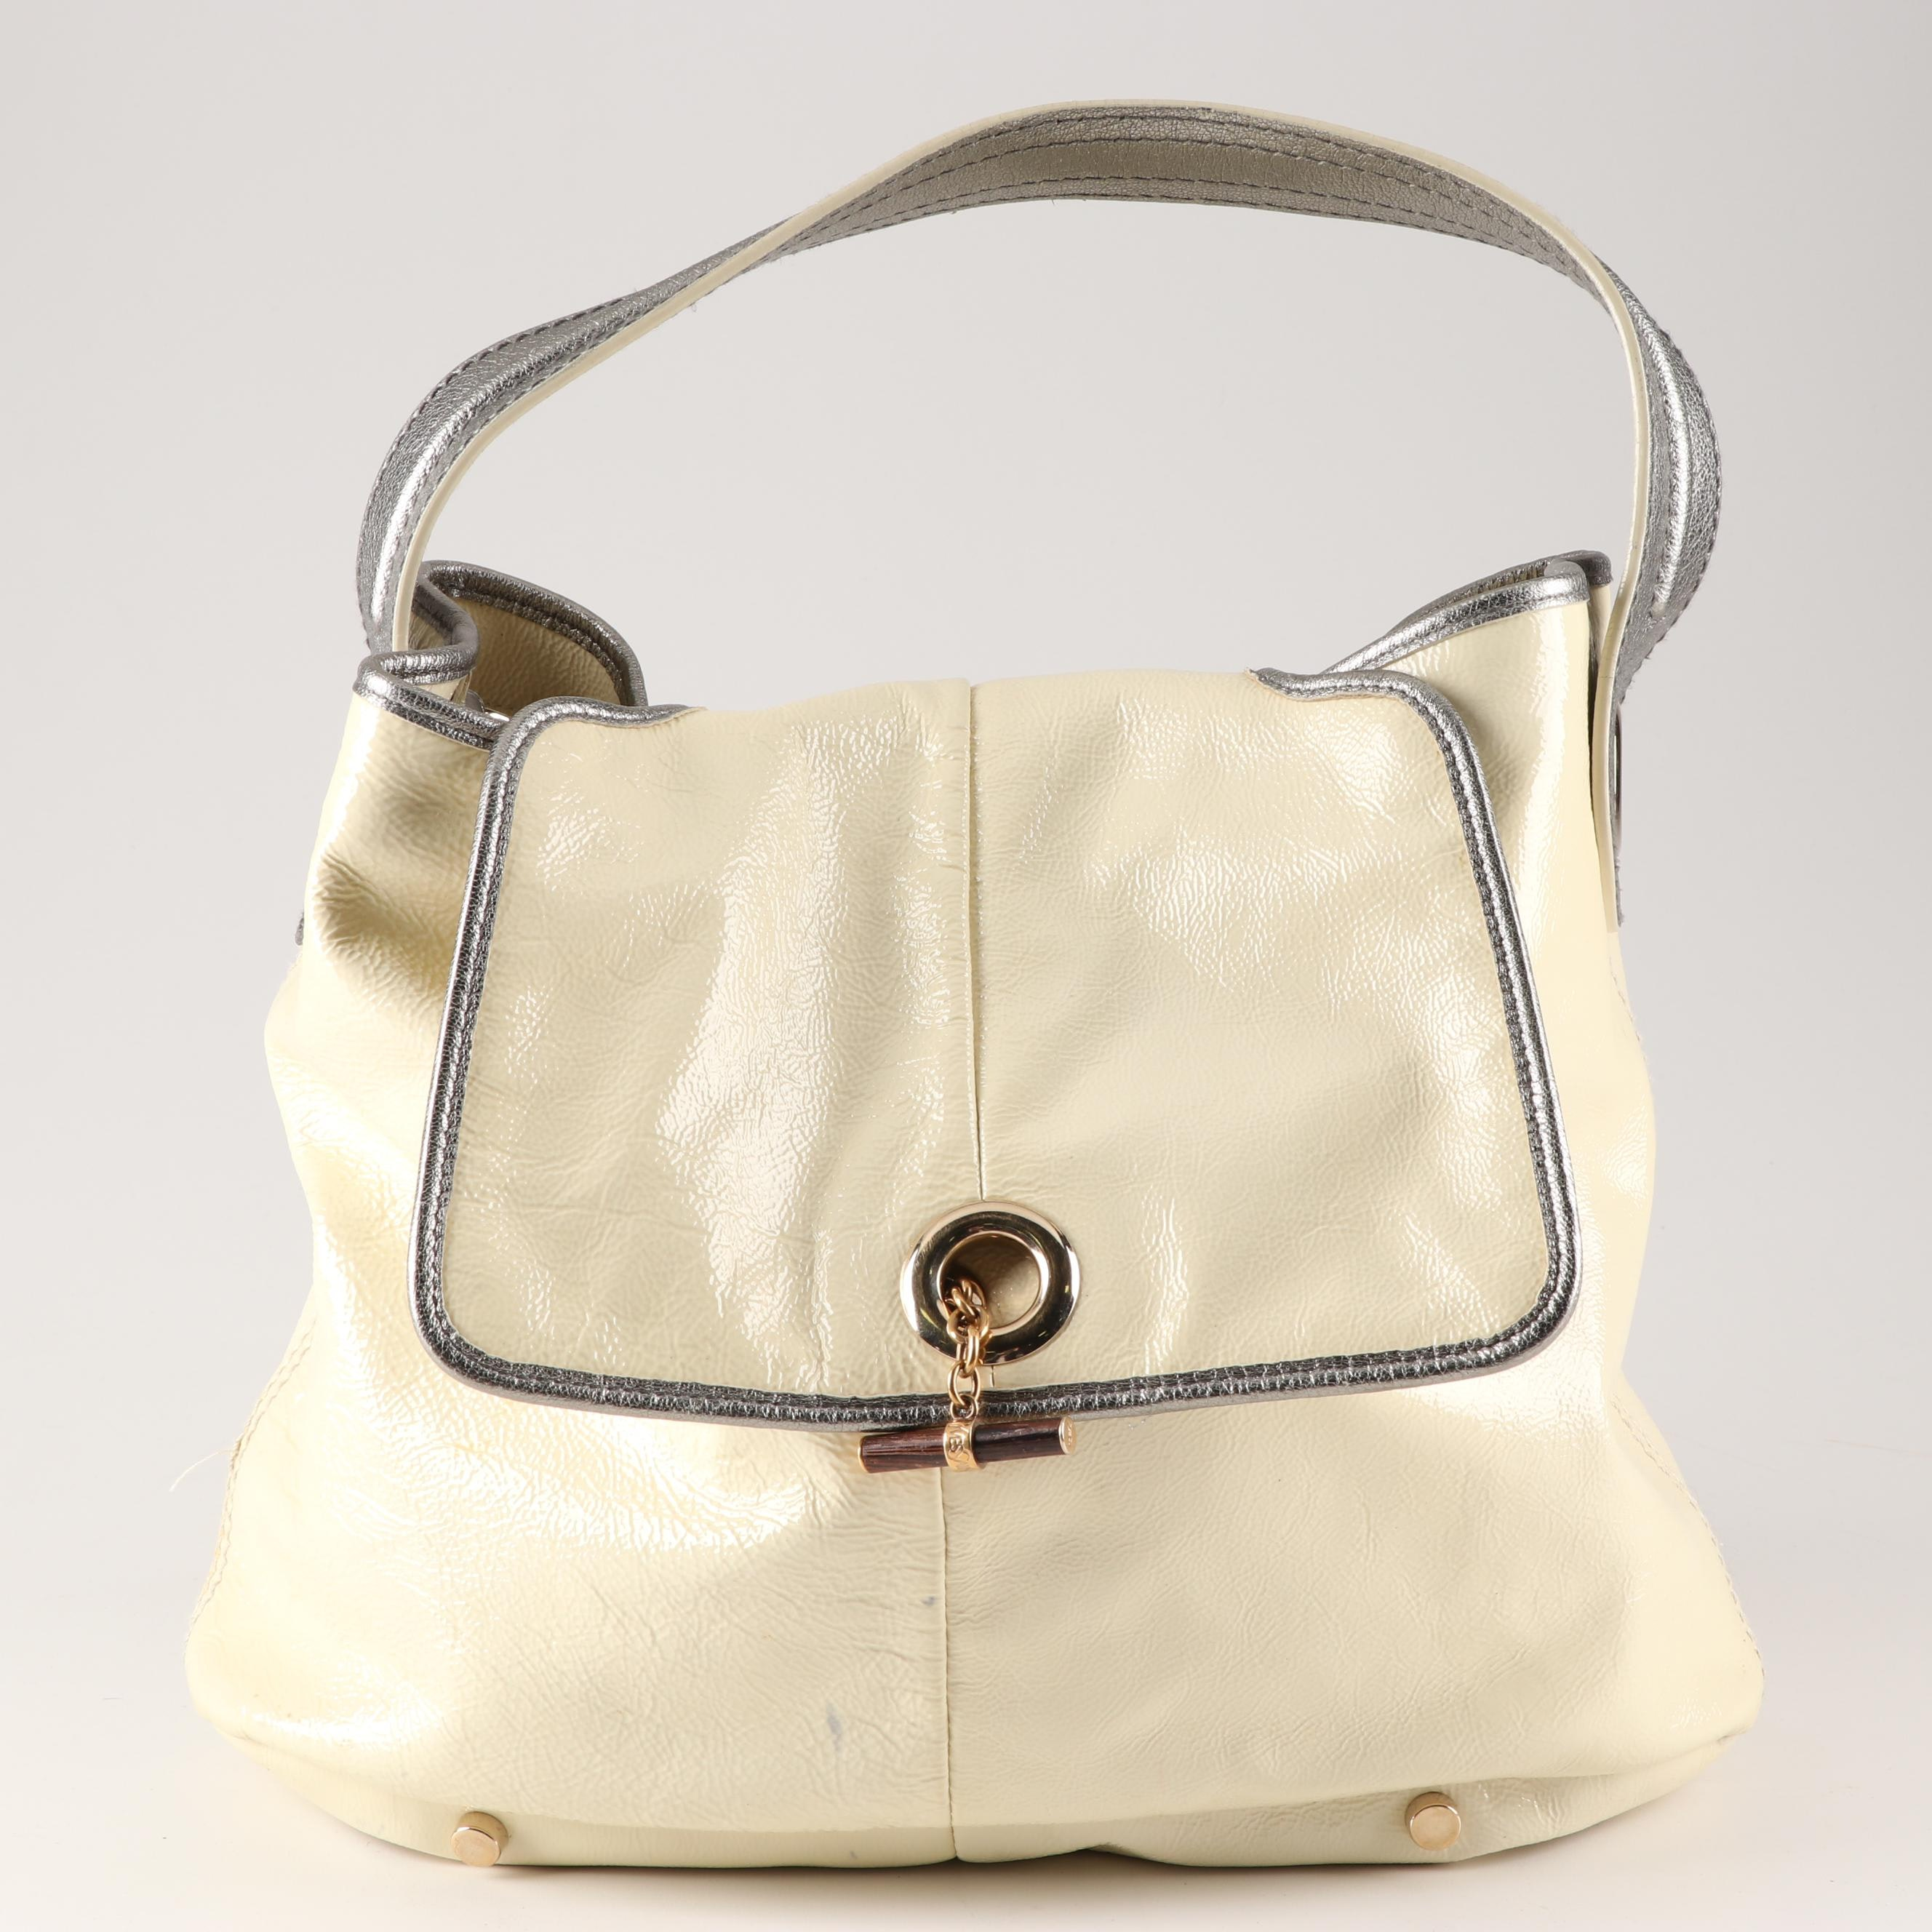 Yves Saint Laurent Ivory Patent Leather Hobo Handbag Trimmed in Silver Metallic